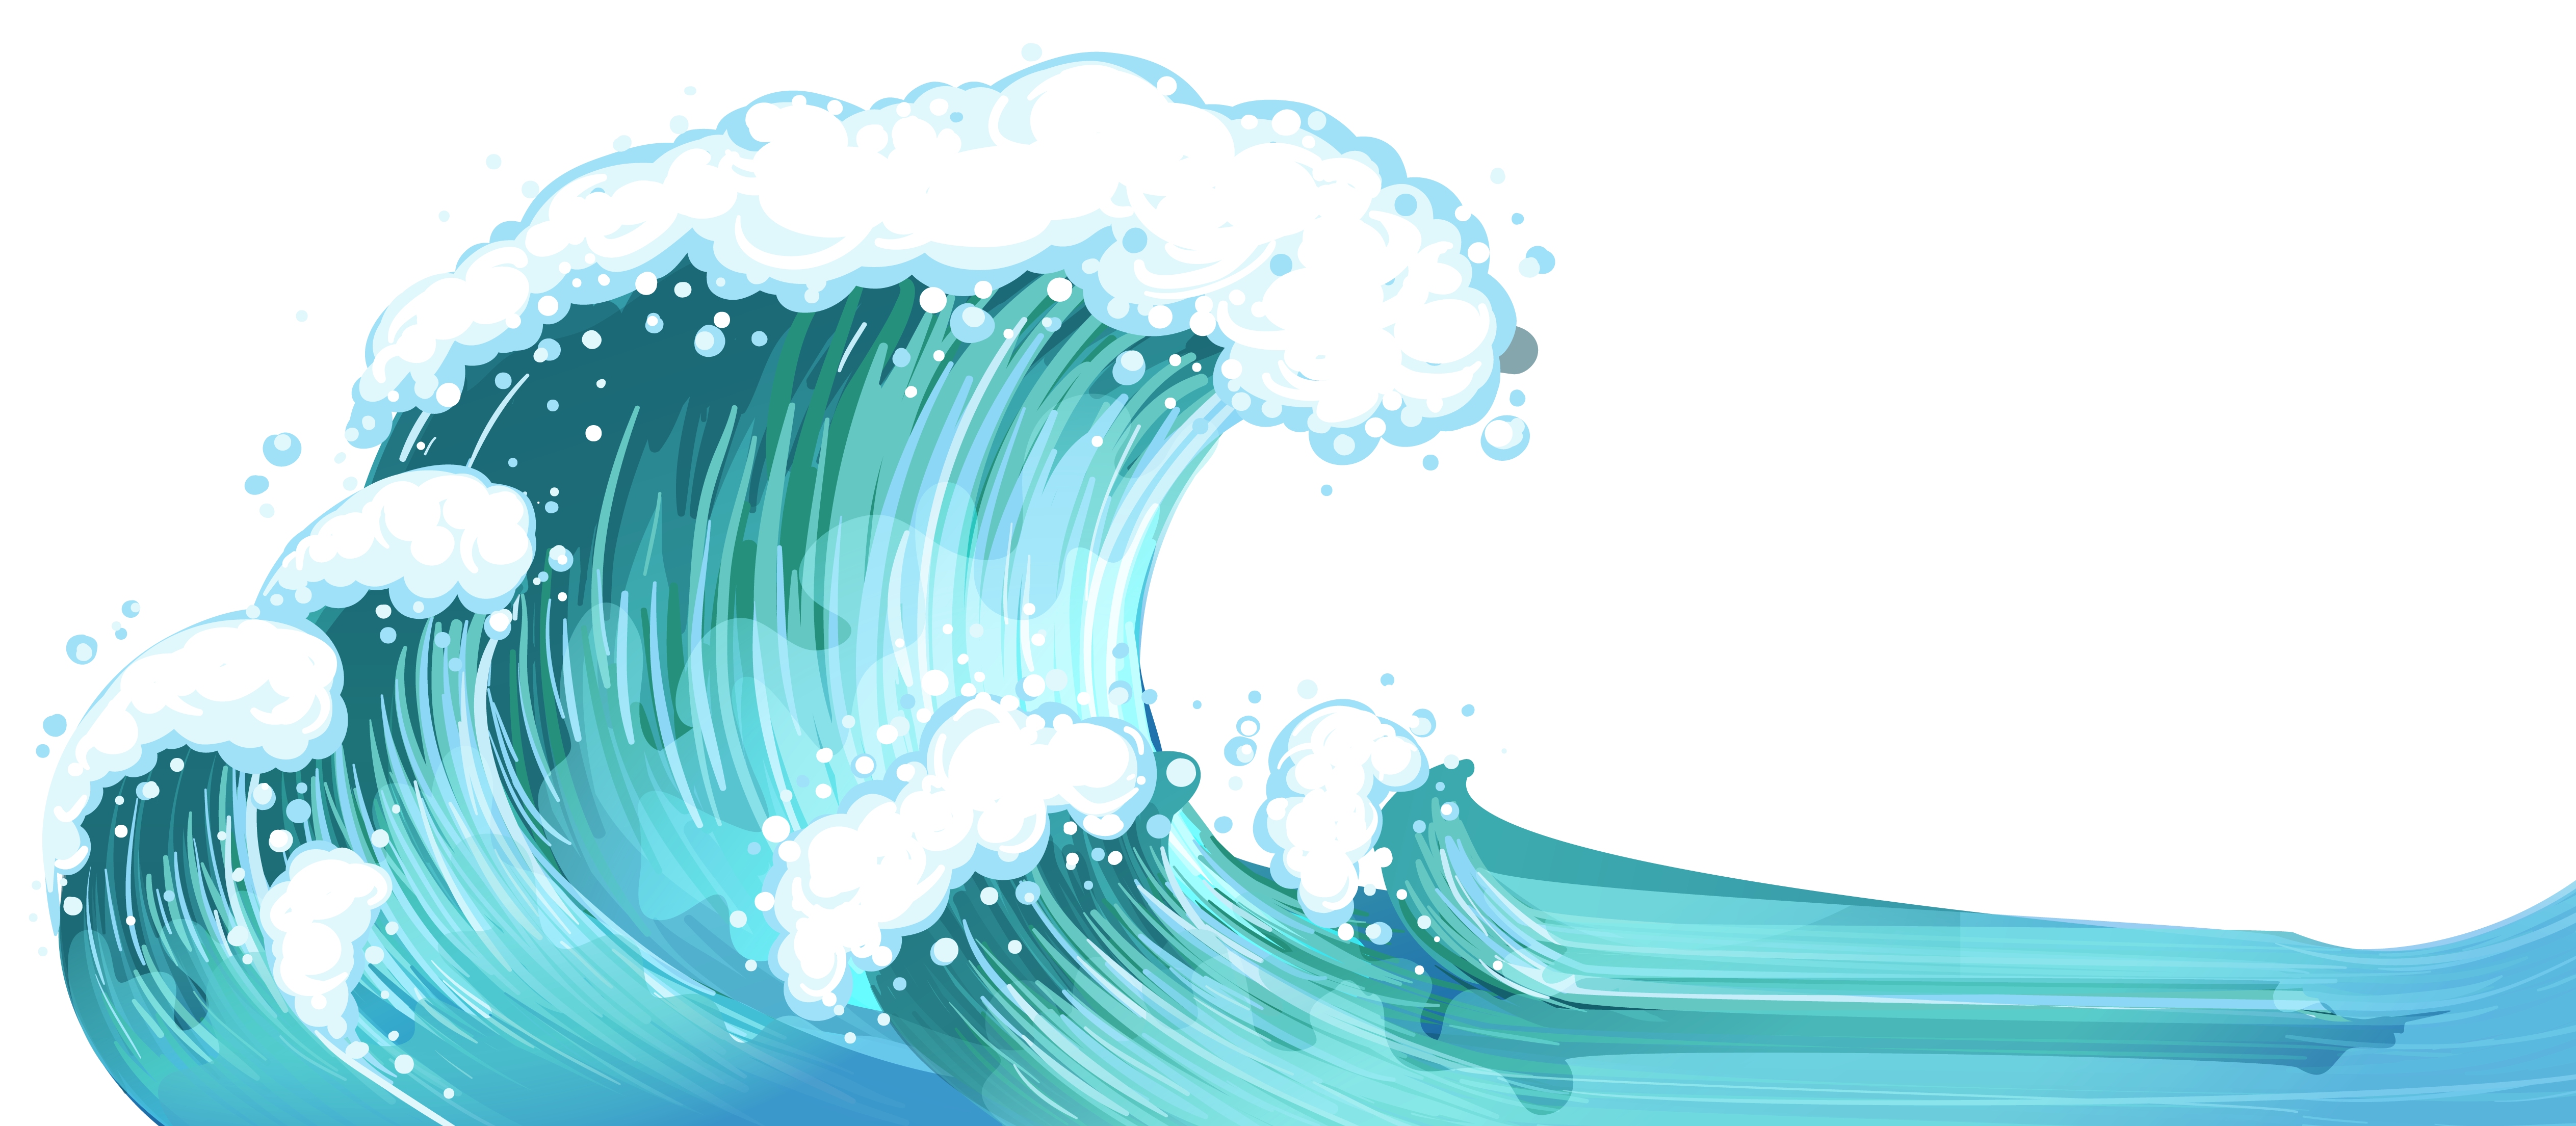 banner library ocean waves clip art simple